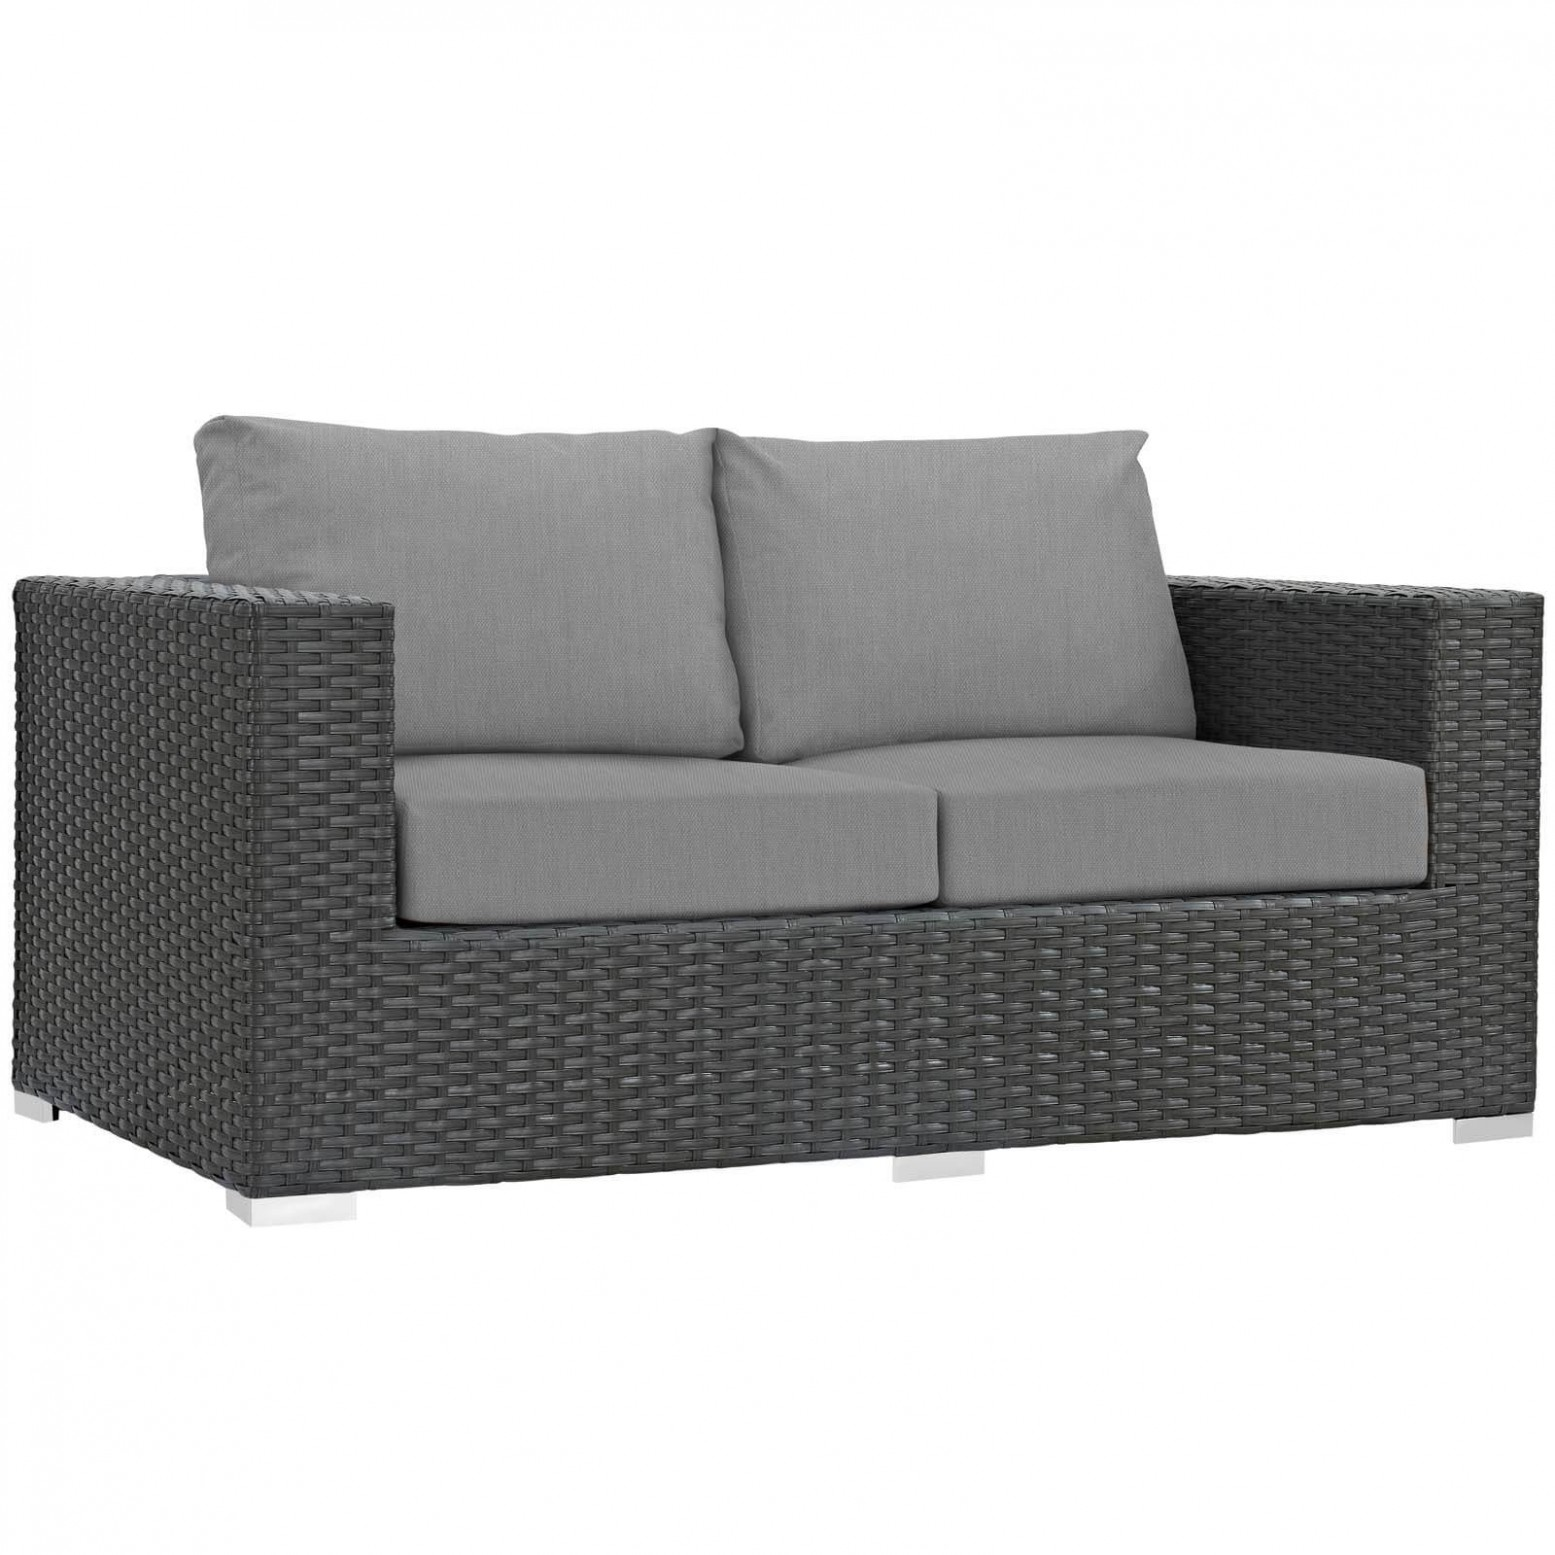 Sojourn Sunbrella Synthetic Rattan Weave Outdoor Patio Loveseat By Modway Furniture Sohomod Com